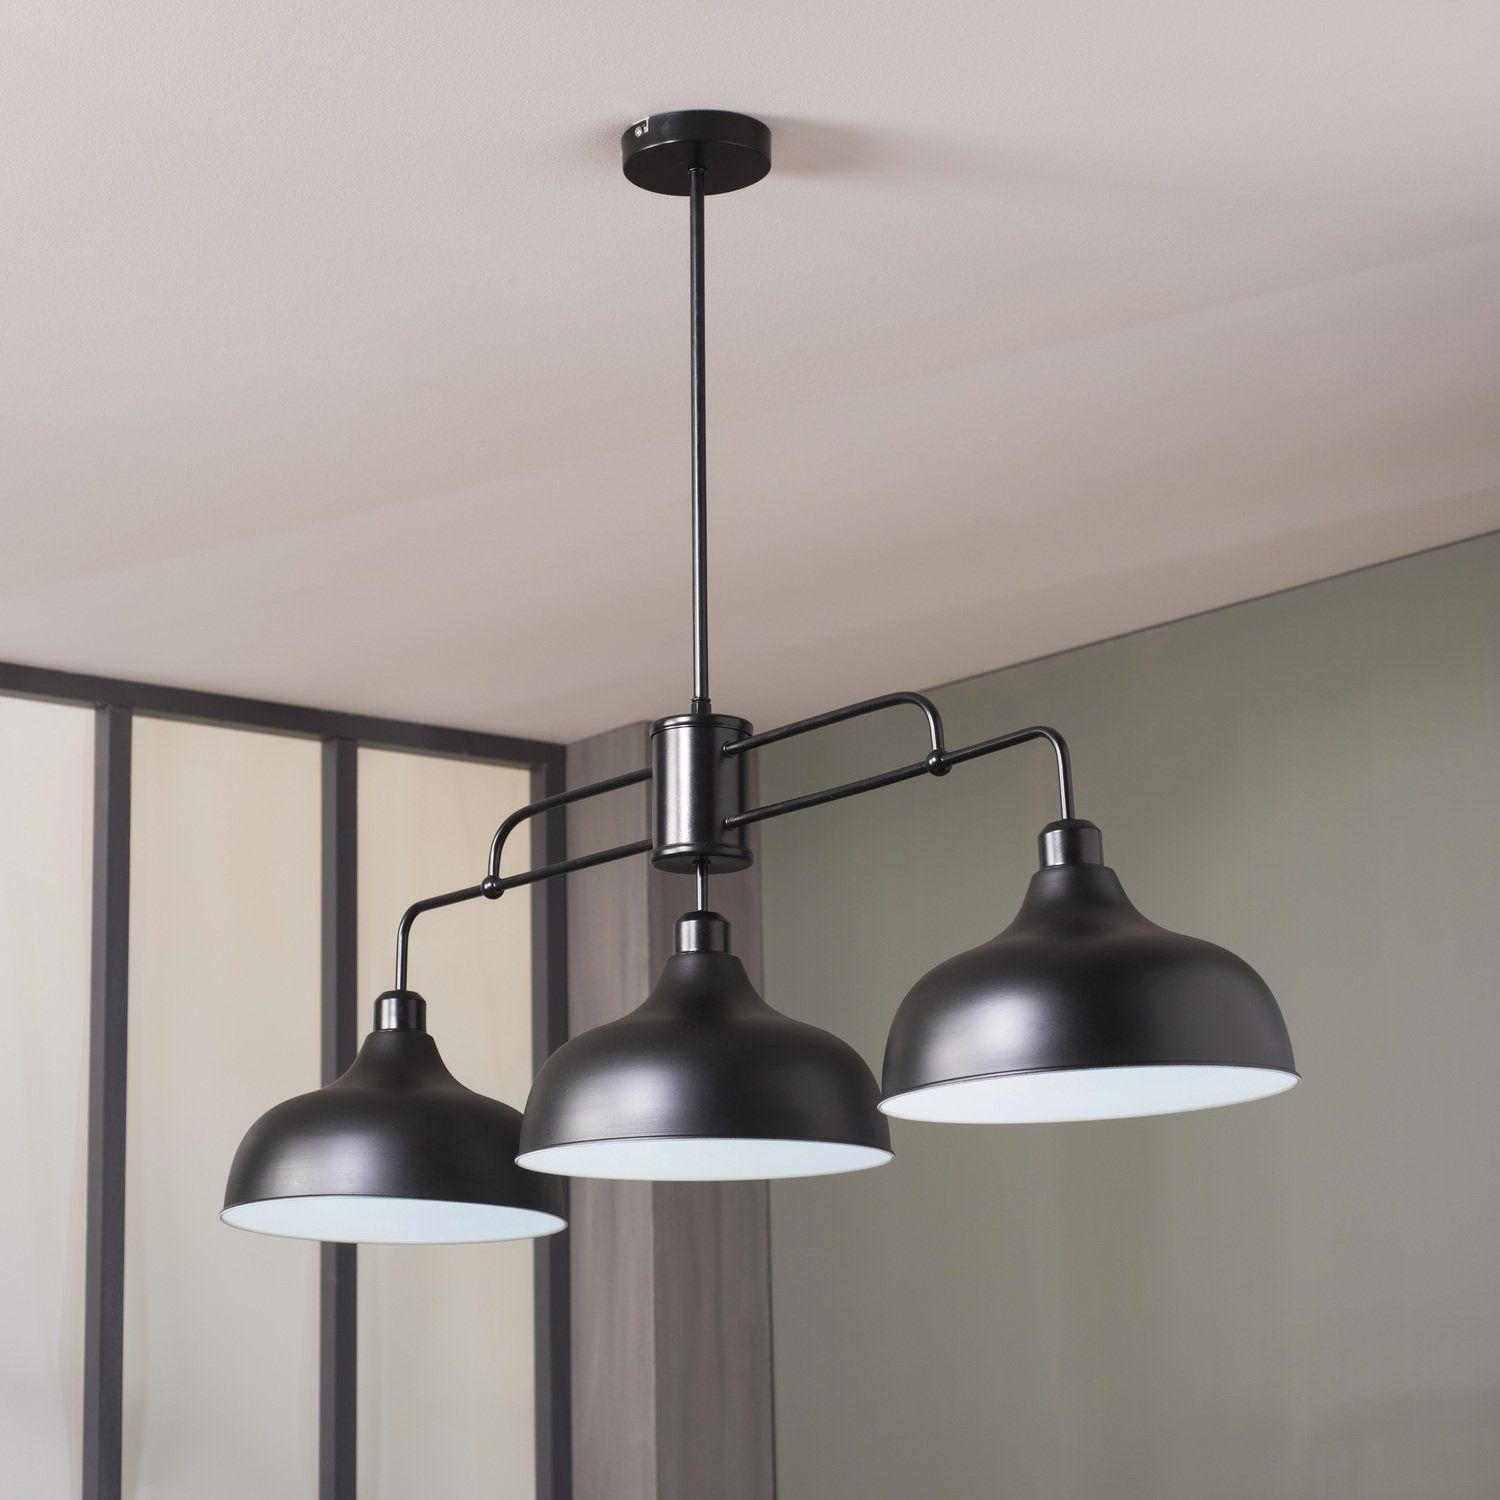 Cette suspension design adopte un style résolument industriel